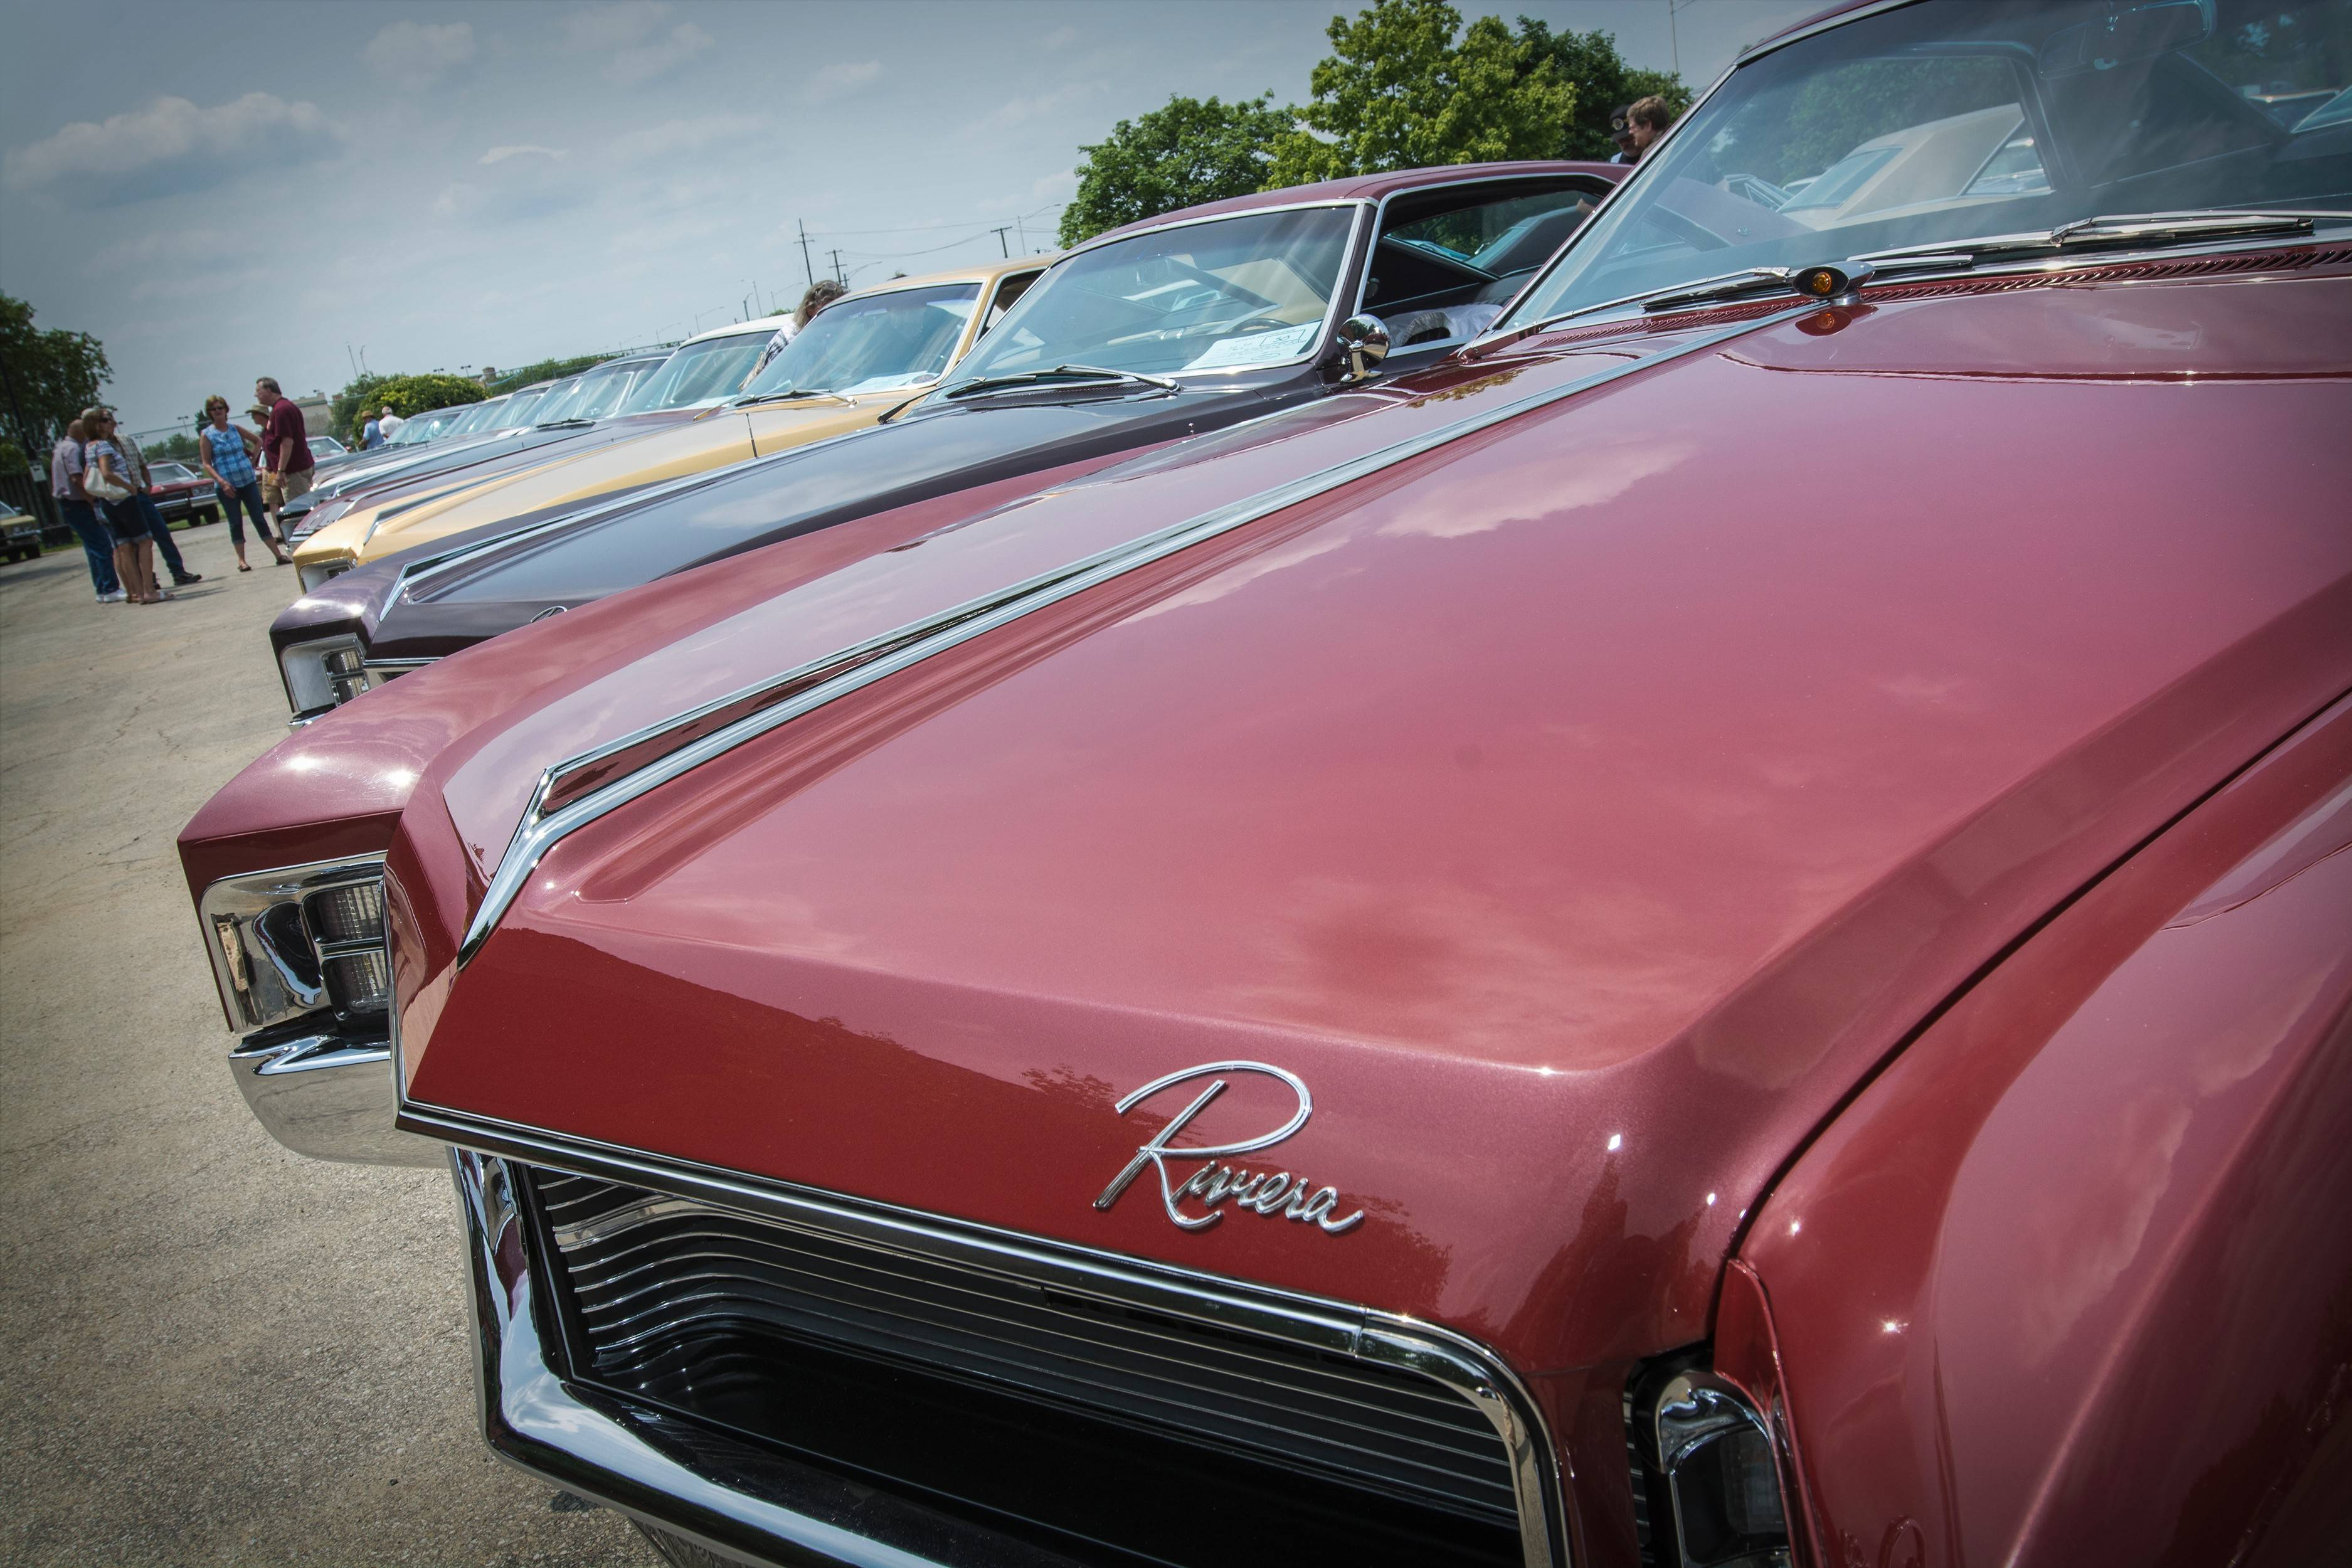 The Riviera Owners Association car club's 31st annual meet, Pheasant Run Resort, St. Charles, took place June 30 to July 3, 2015.